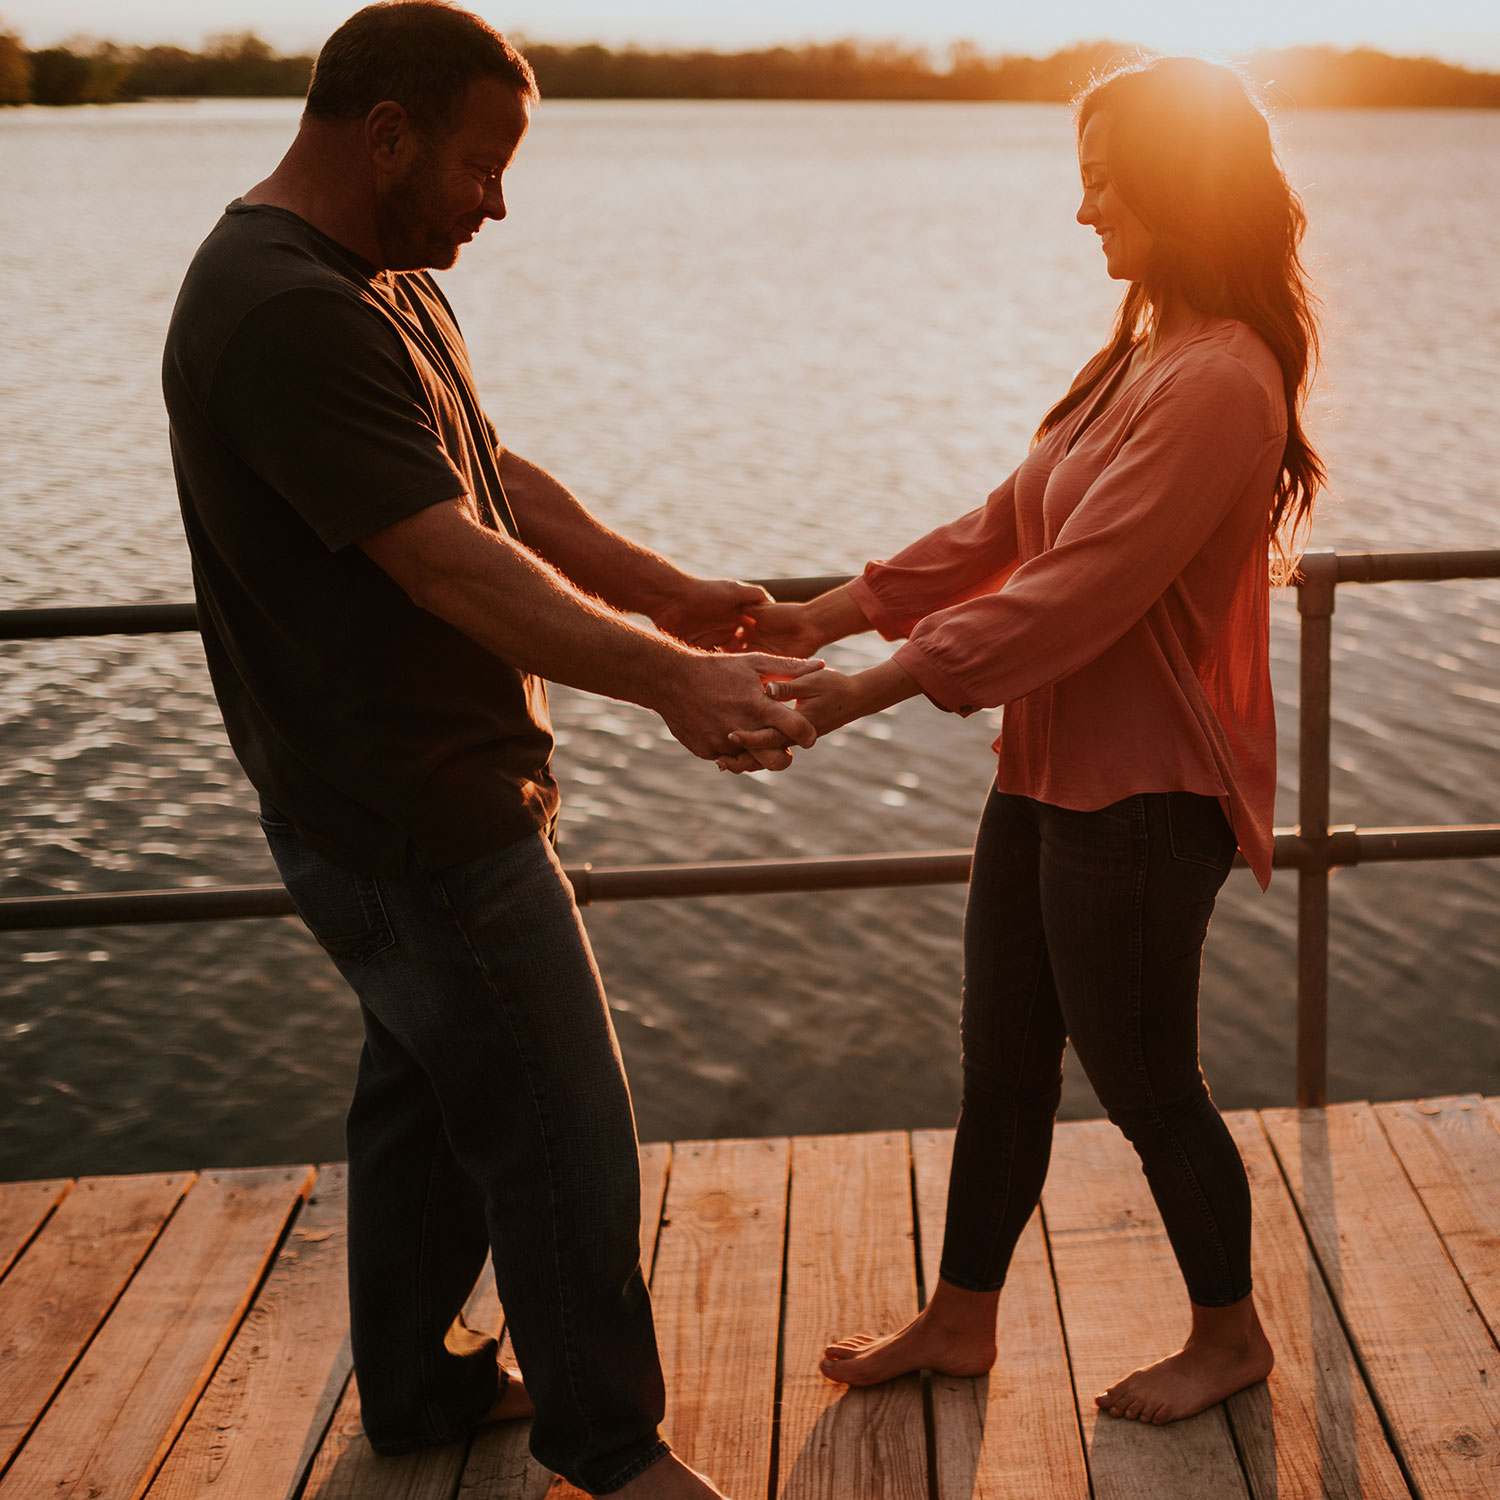 couple-holding-hands-dancing-on-dock-engagement-desmoines-iowa-raelyn-ramey-photography.jpg